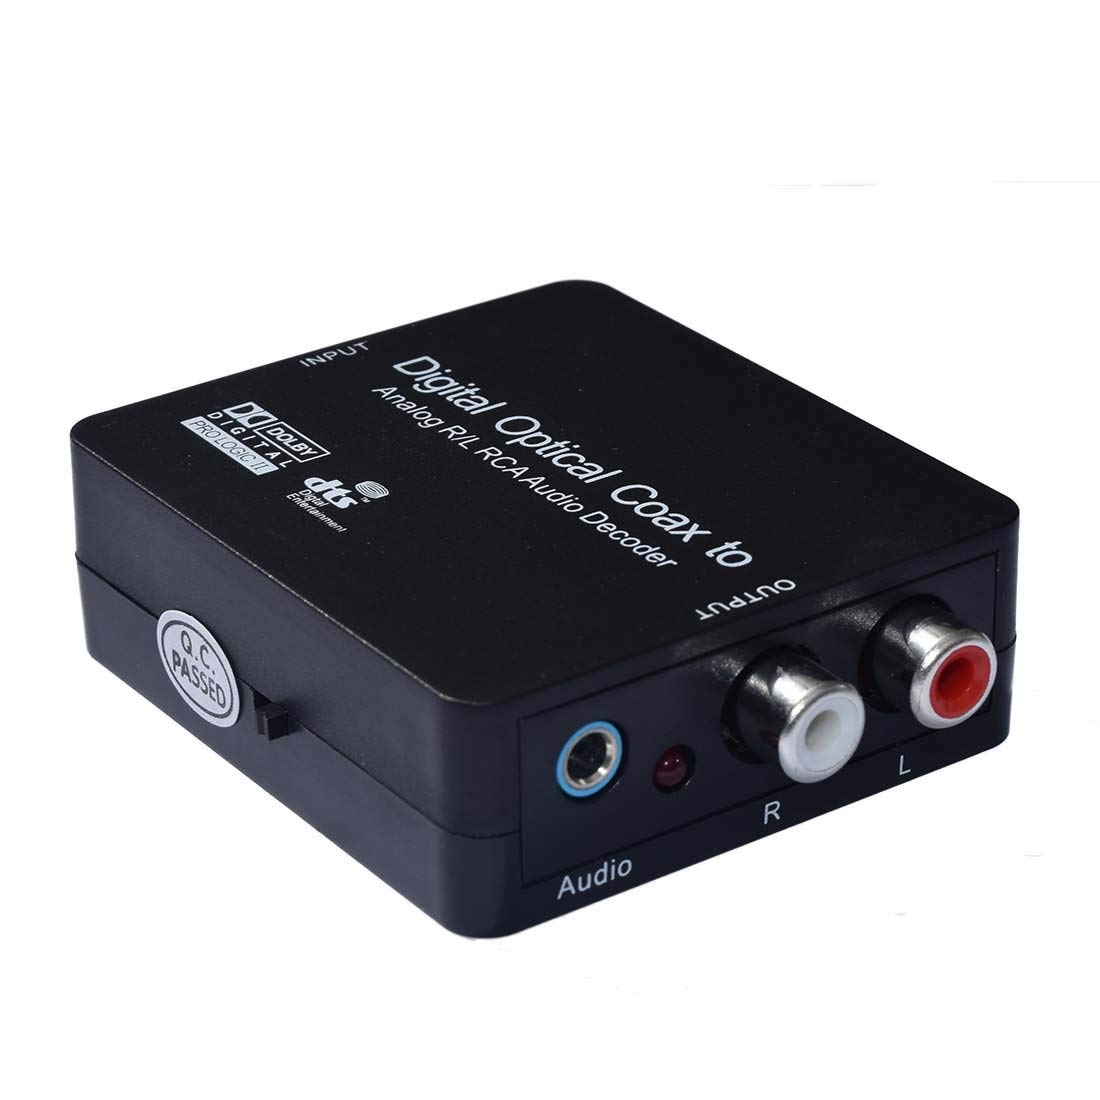 Audio Decoder - SODIAL(R)Digital Optical Coax to Analog R/L RCA Audio Decoder